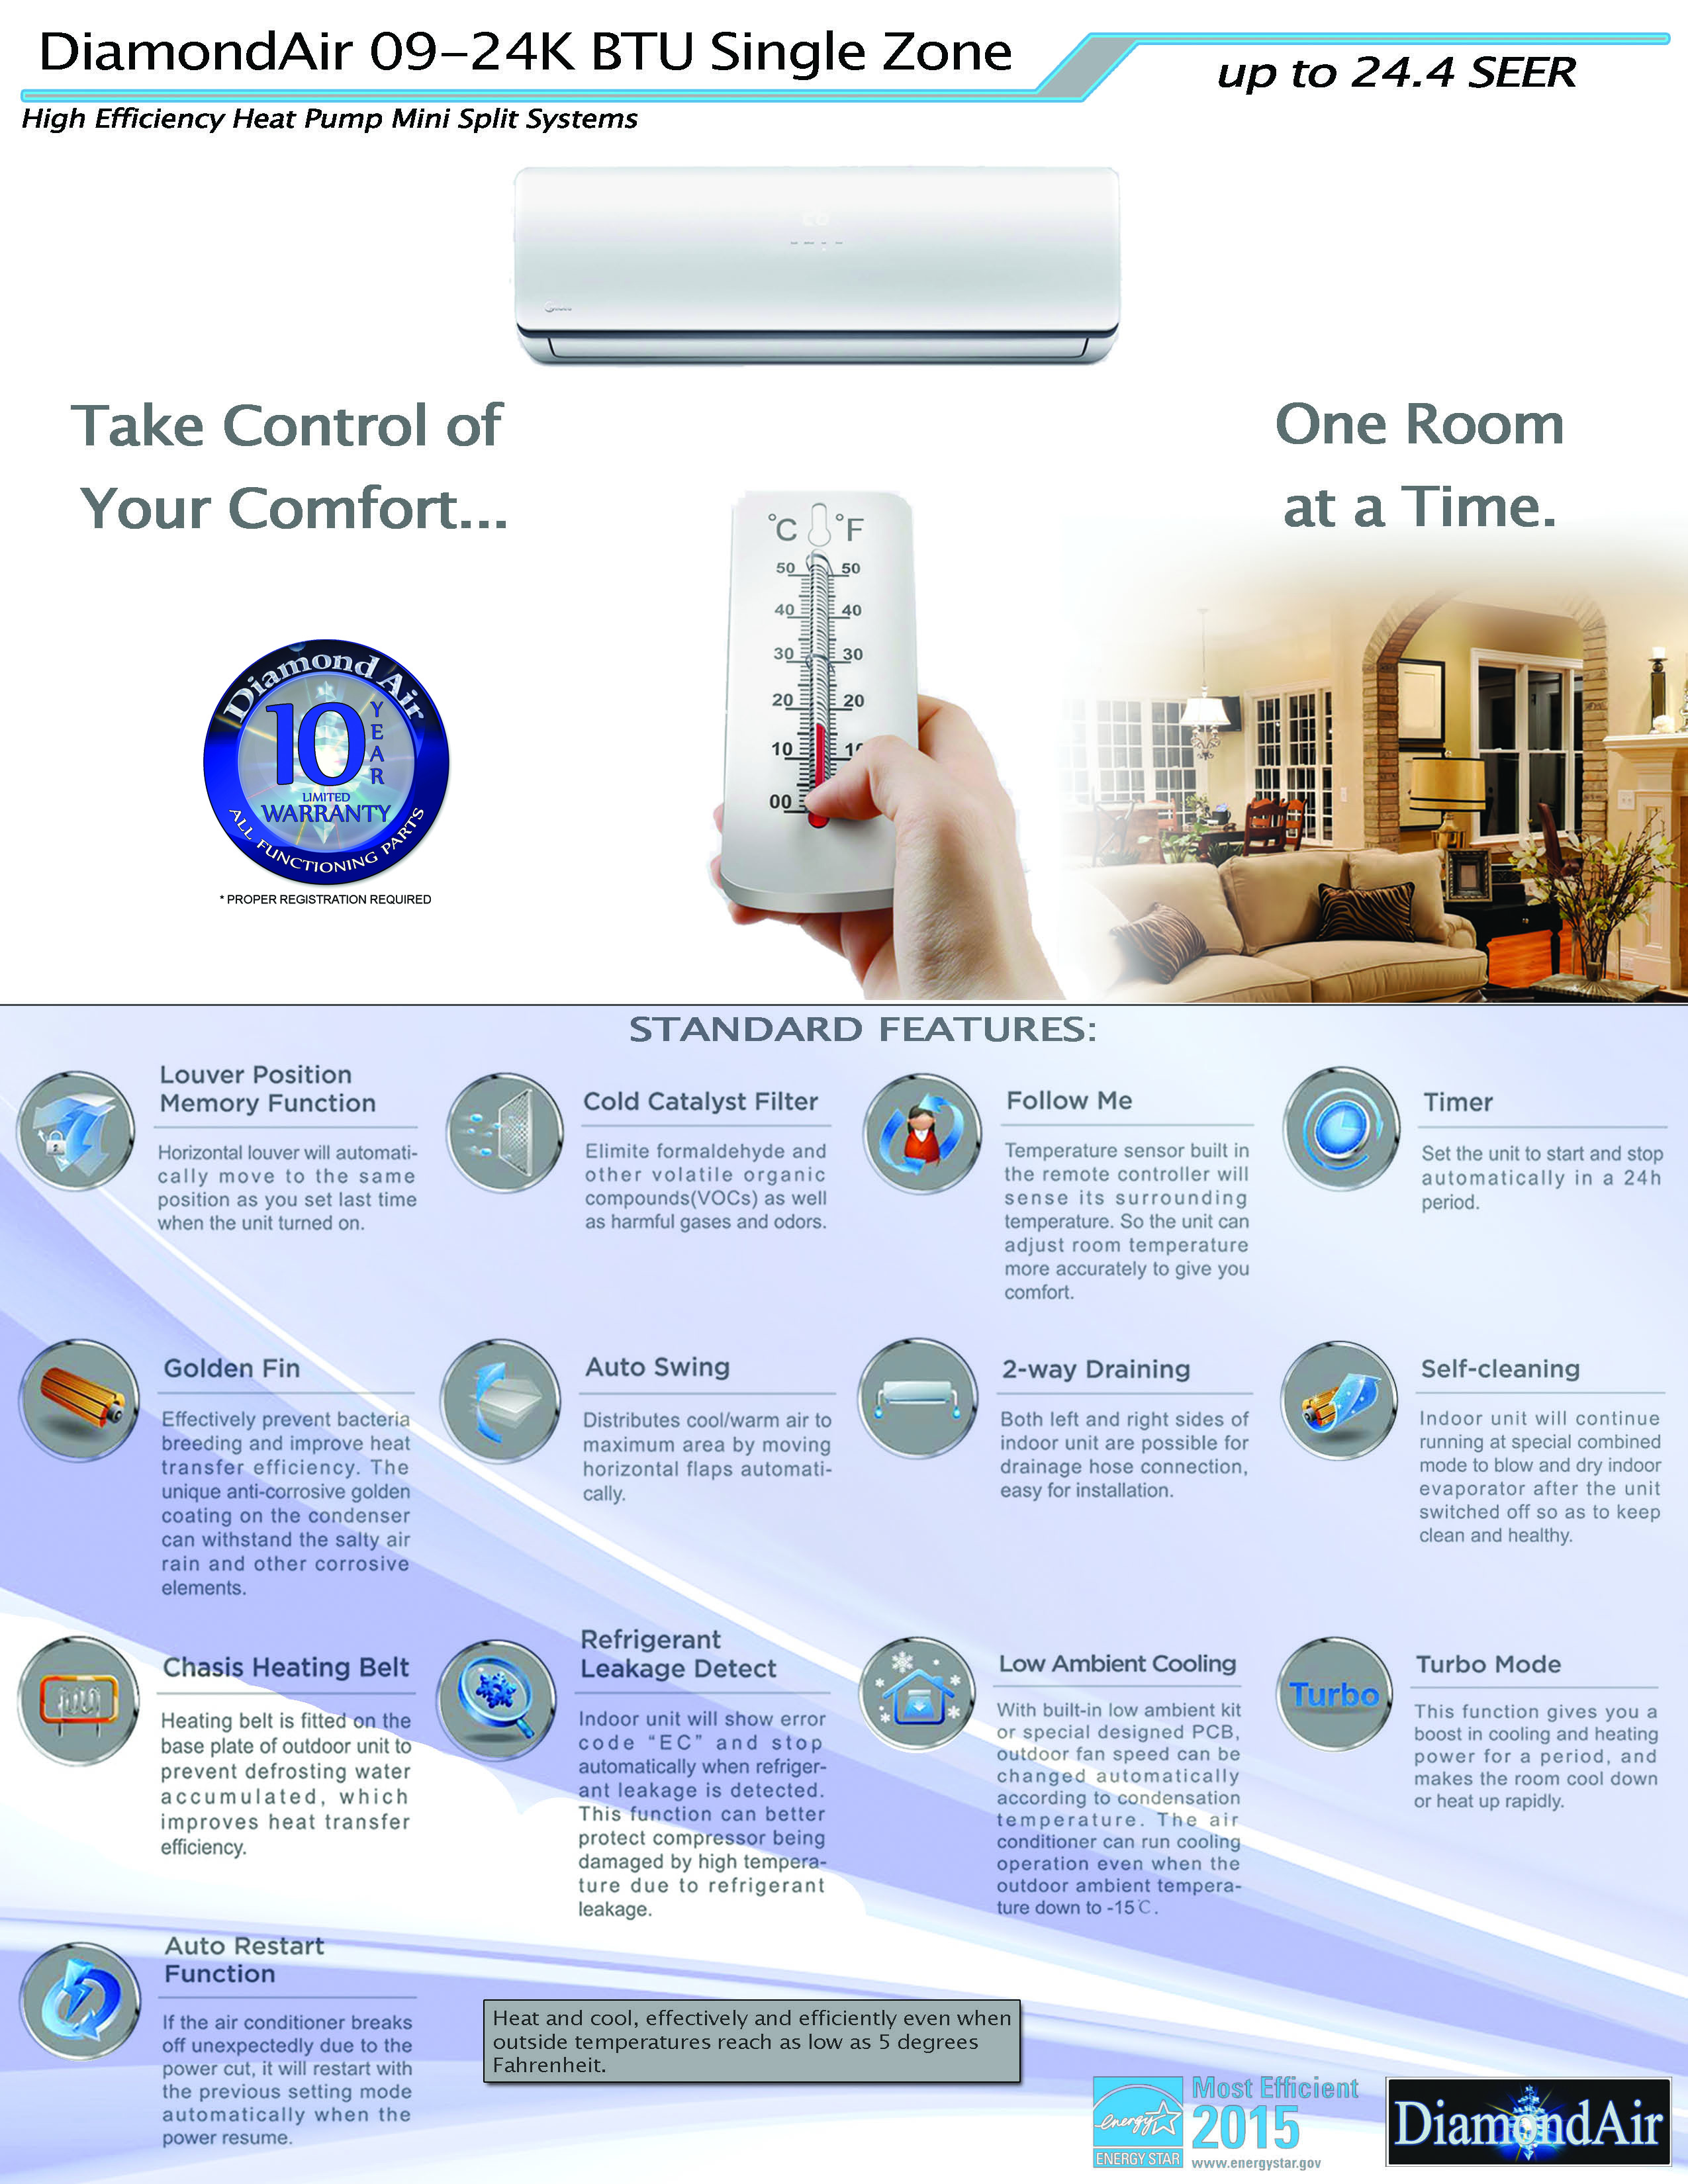 Mini Split Multi 5 Zone Diamondair Up To 224 Seer Heat Pump Ceiling Heater Wiring Diagram Cassettes Allow Customers Four Way 360 Air Flow With An In Solution